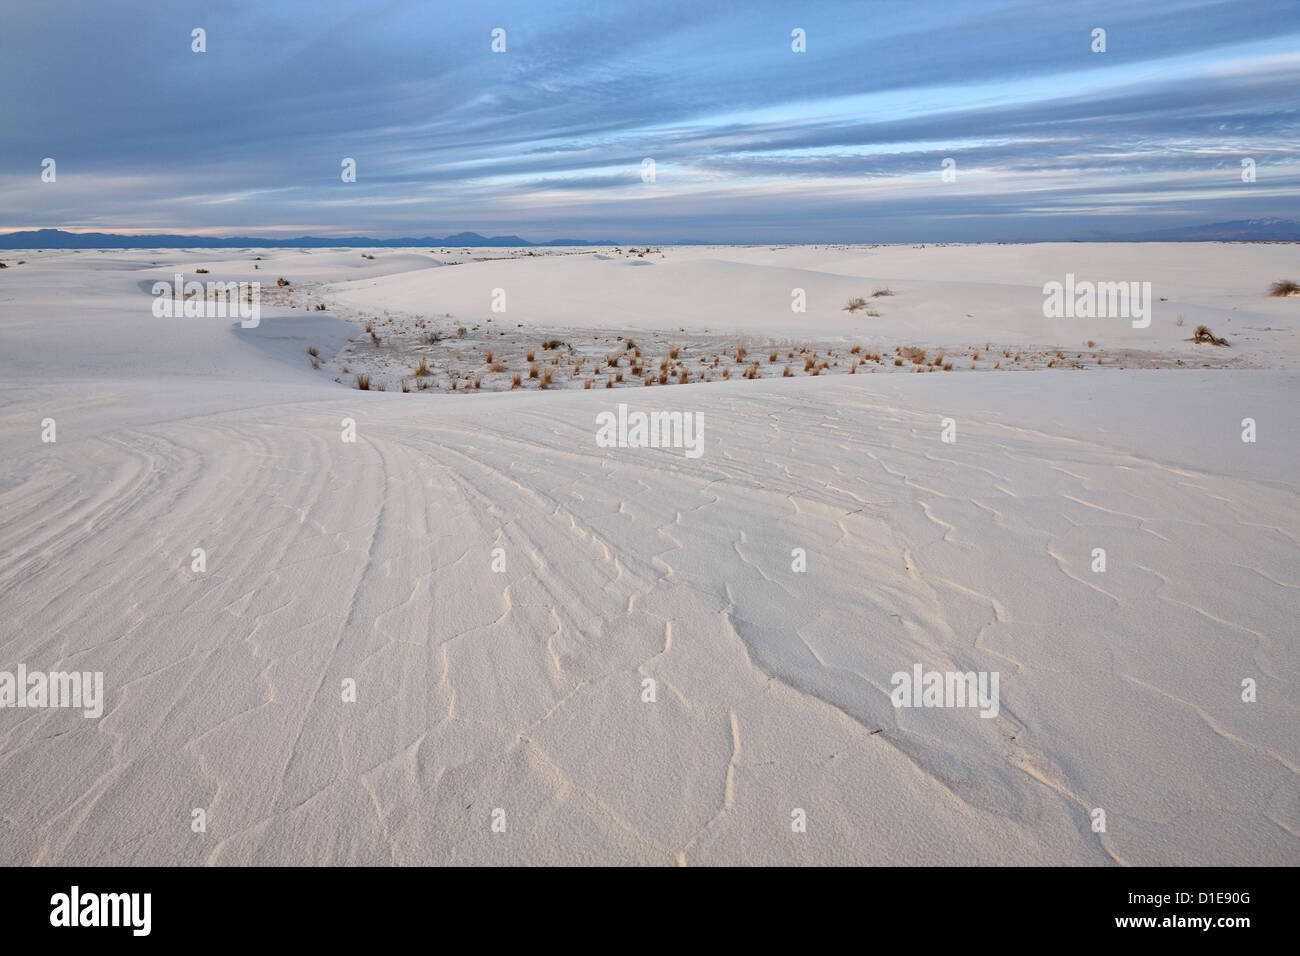 Patterns in the dunes, White Sands National Monument, New Mexico, United States of America, North America - Stock Image